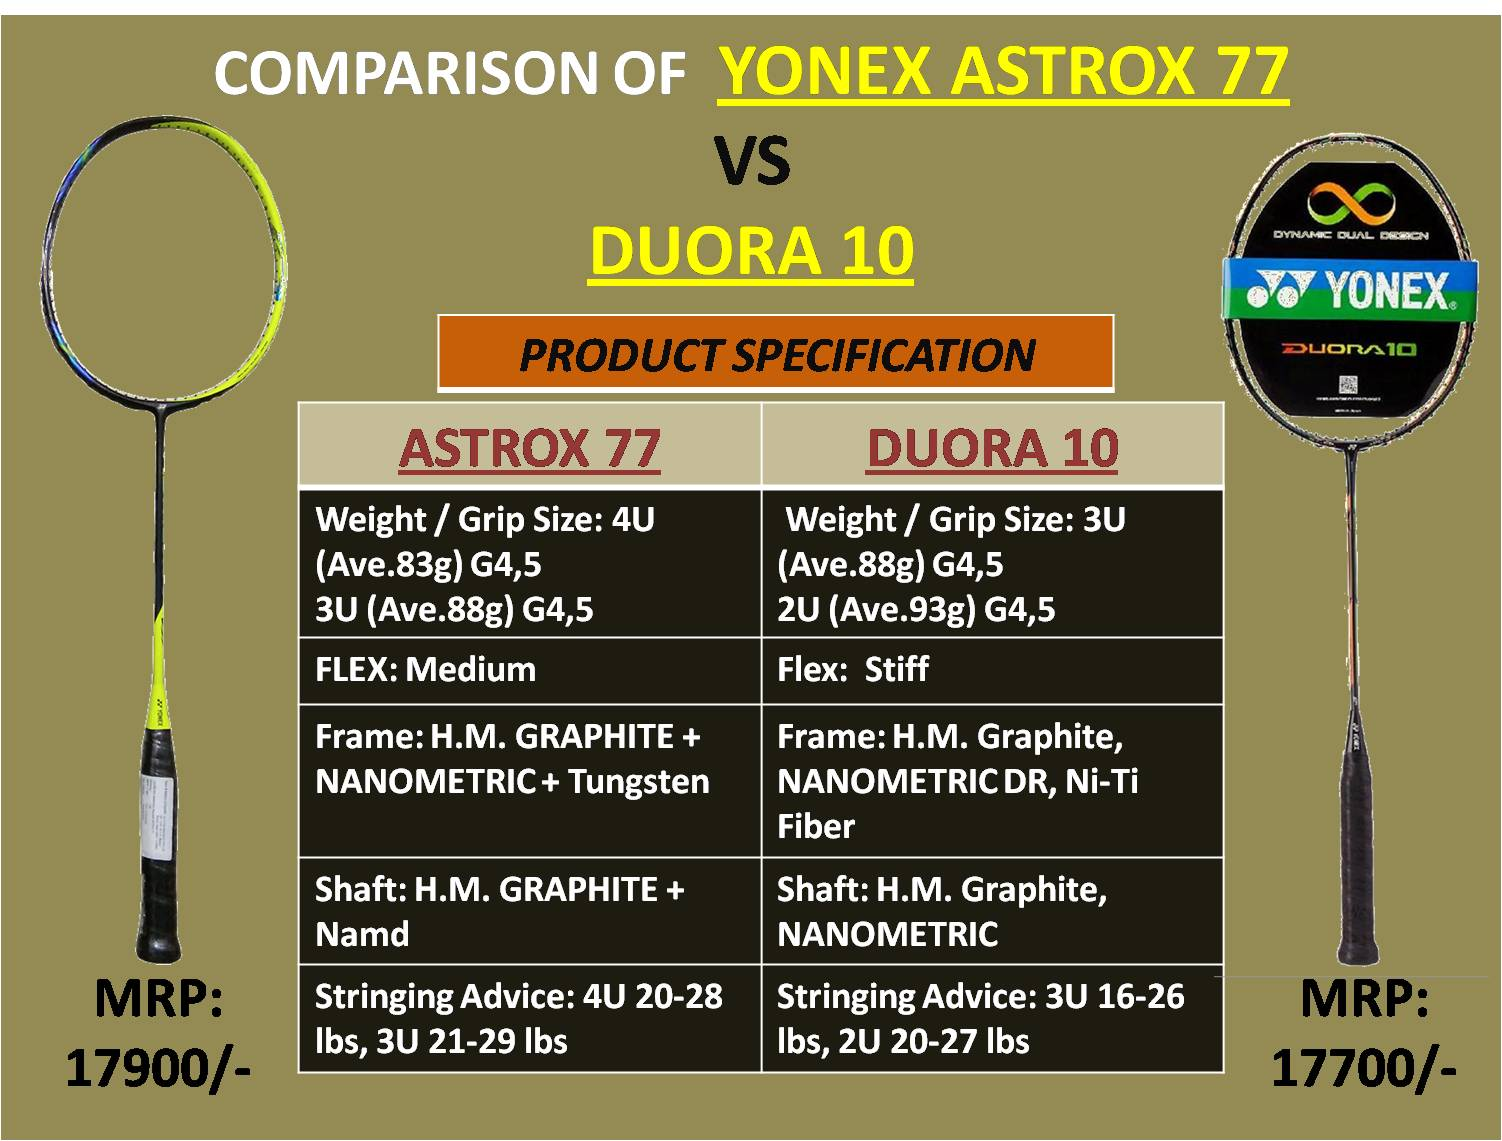 COMPARISON OF YONEX ASTROX 77 VS DUORA 10_2